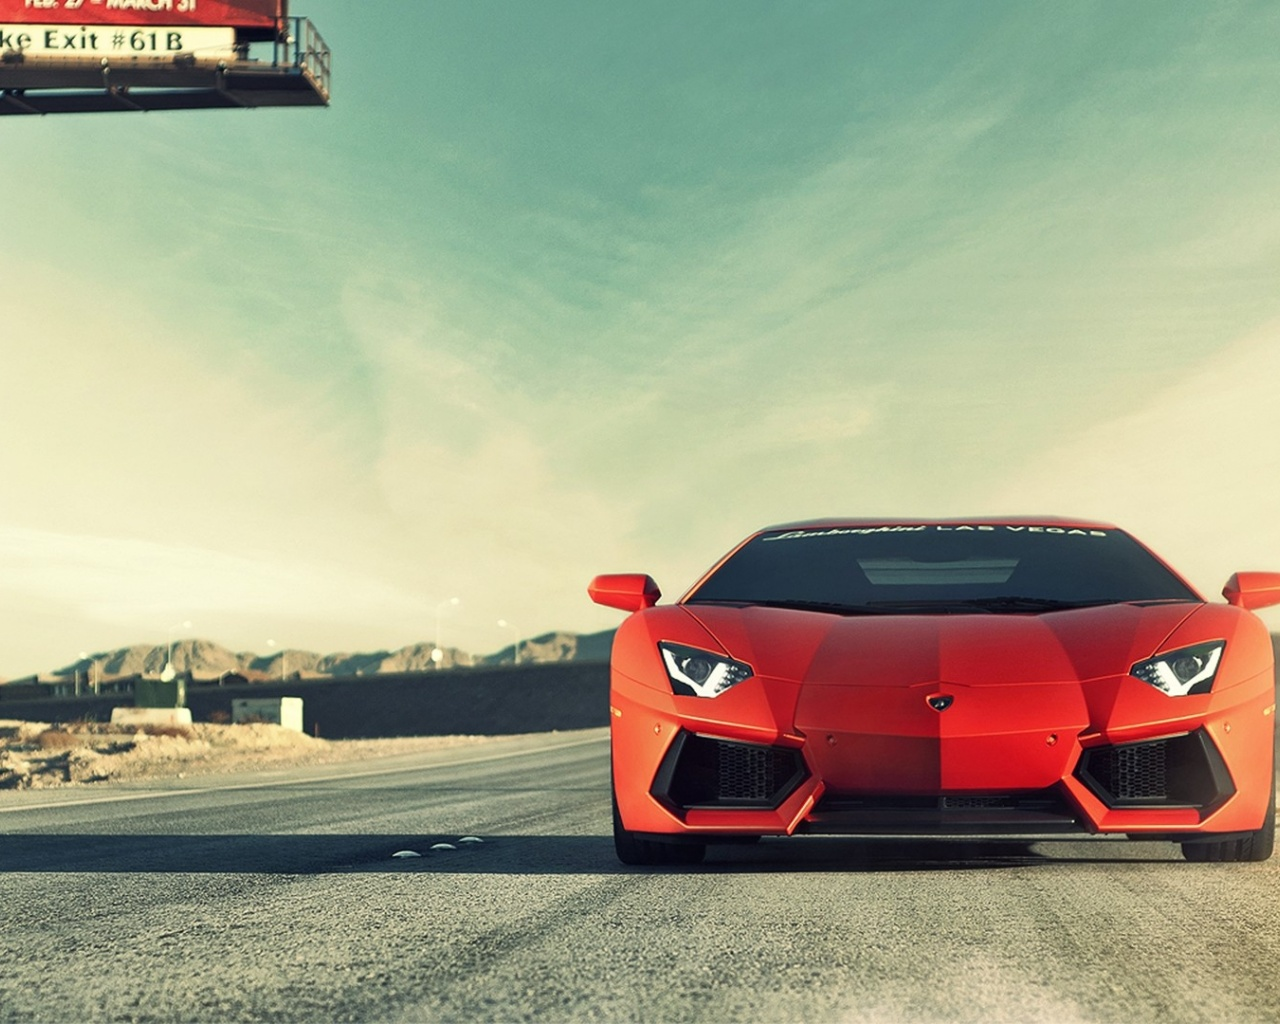 Most Inspiring Wallpaper Mac Lamborghini - lamborghini-aventador-lp700-4-front_wallpapers_36694_1280x1024  2018_711797.jpg